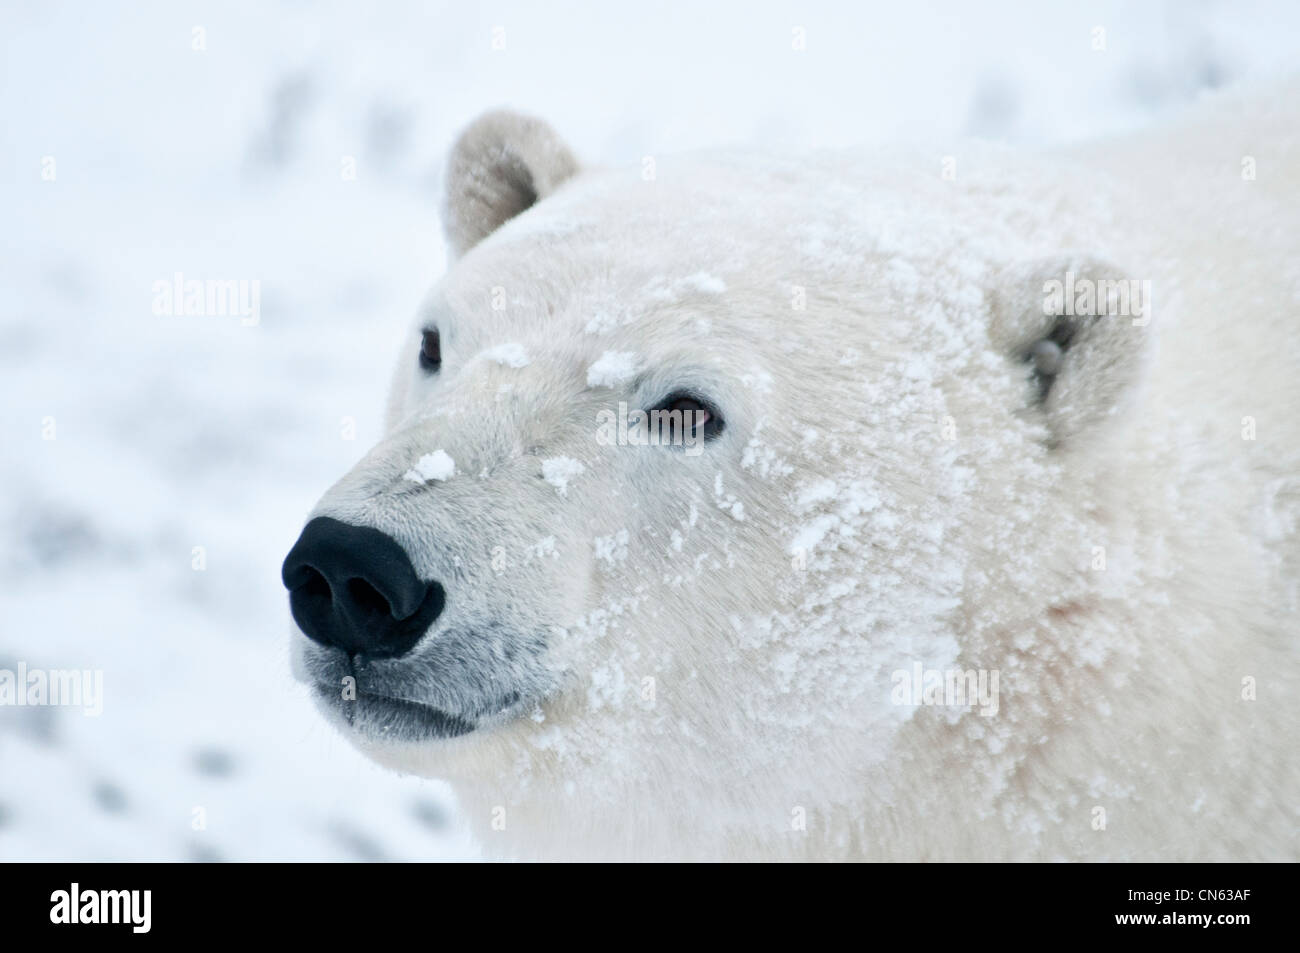 Polar Bear, Ursus maritimus, Wapusk National Park, near Hudson Bay, Cape Churchill, Manitoba, Canada - Stock Image